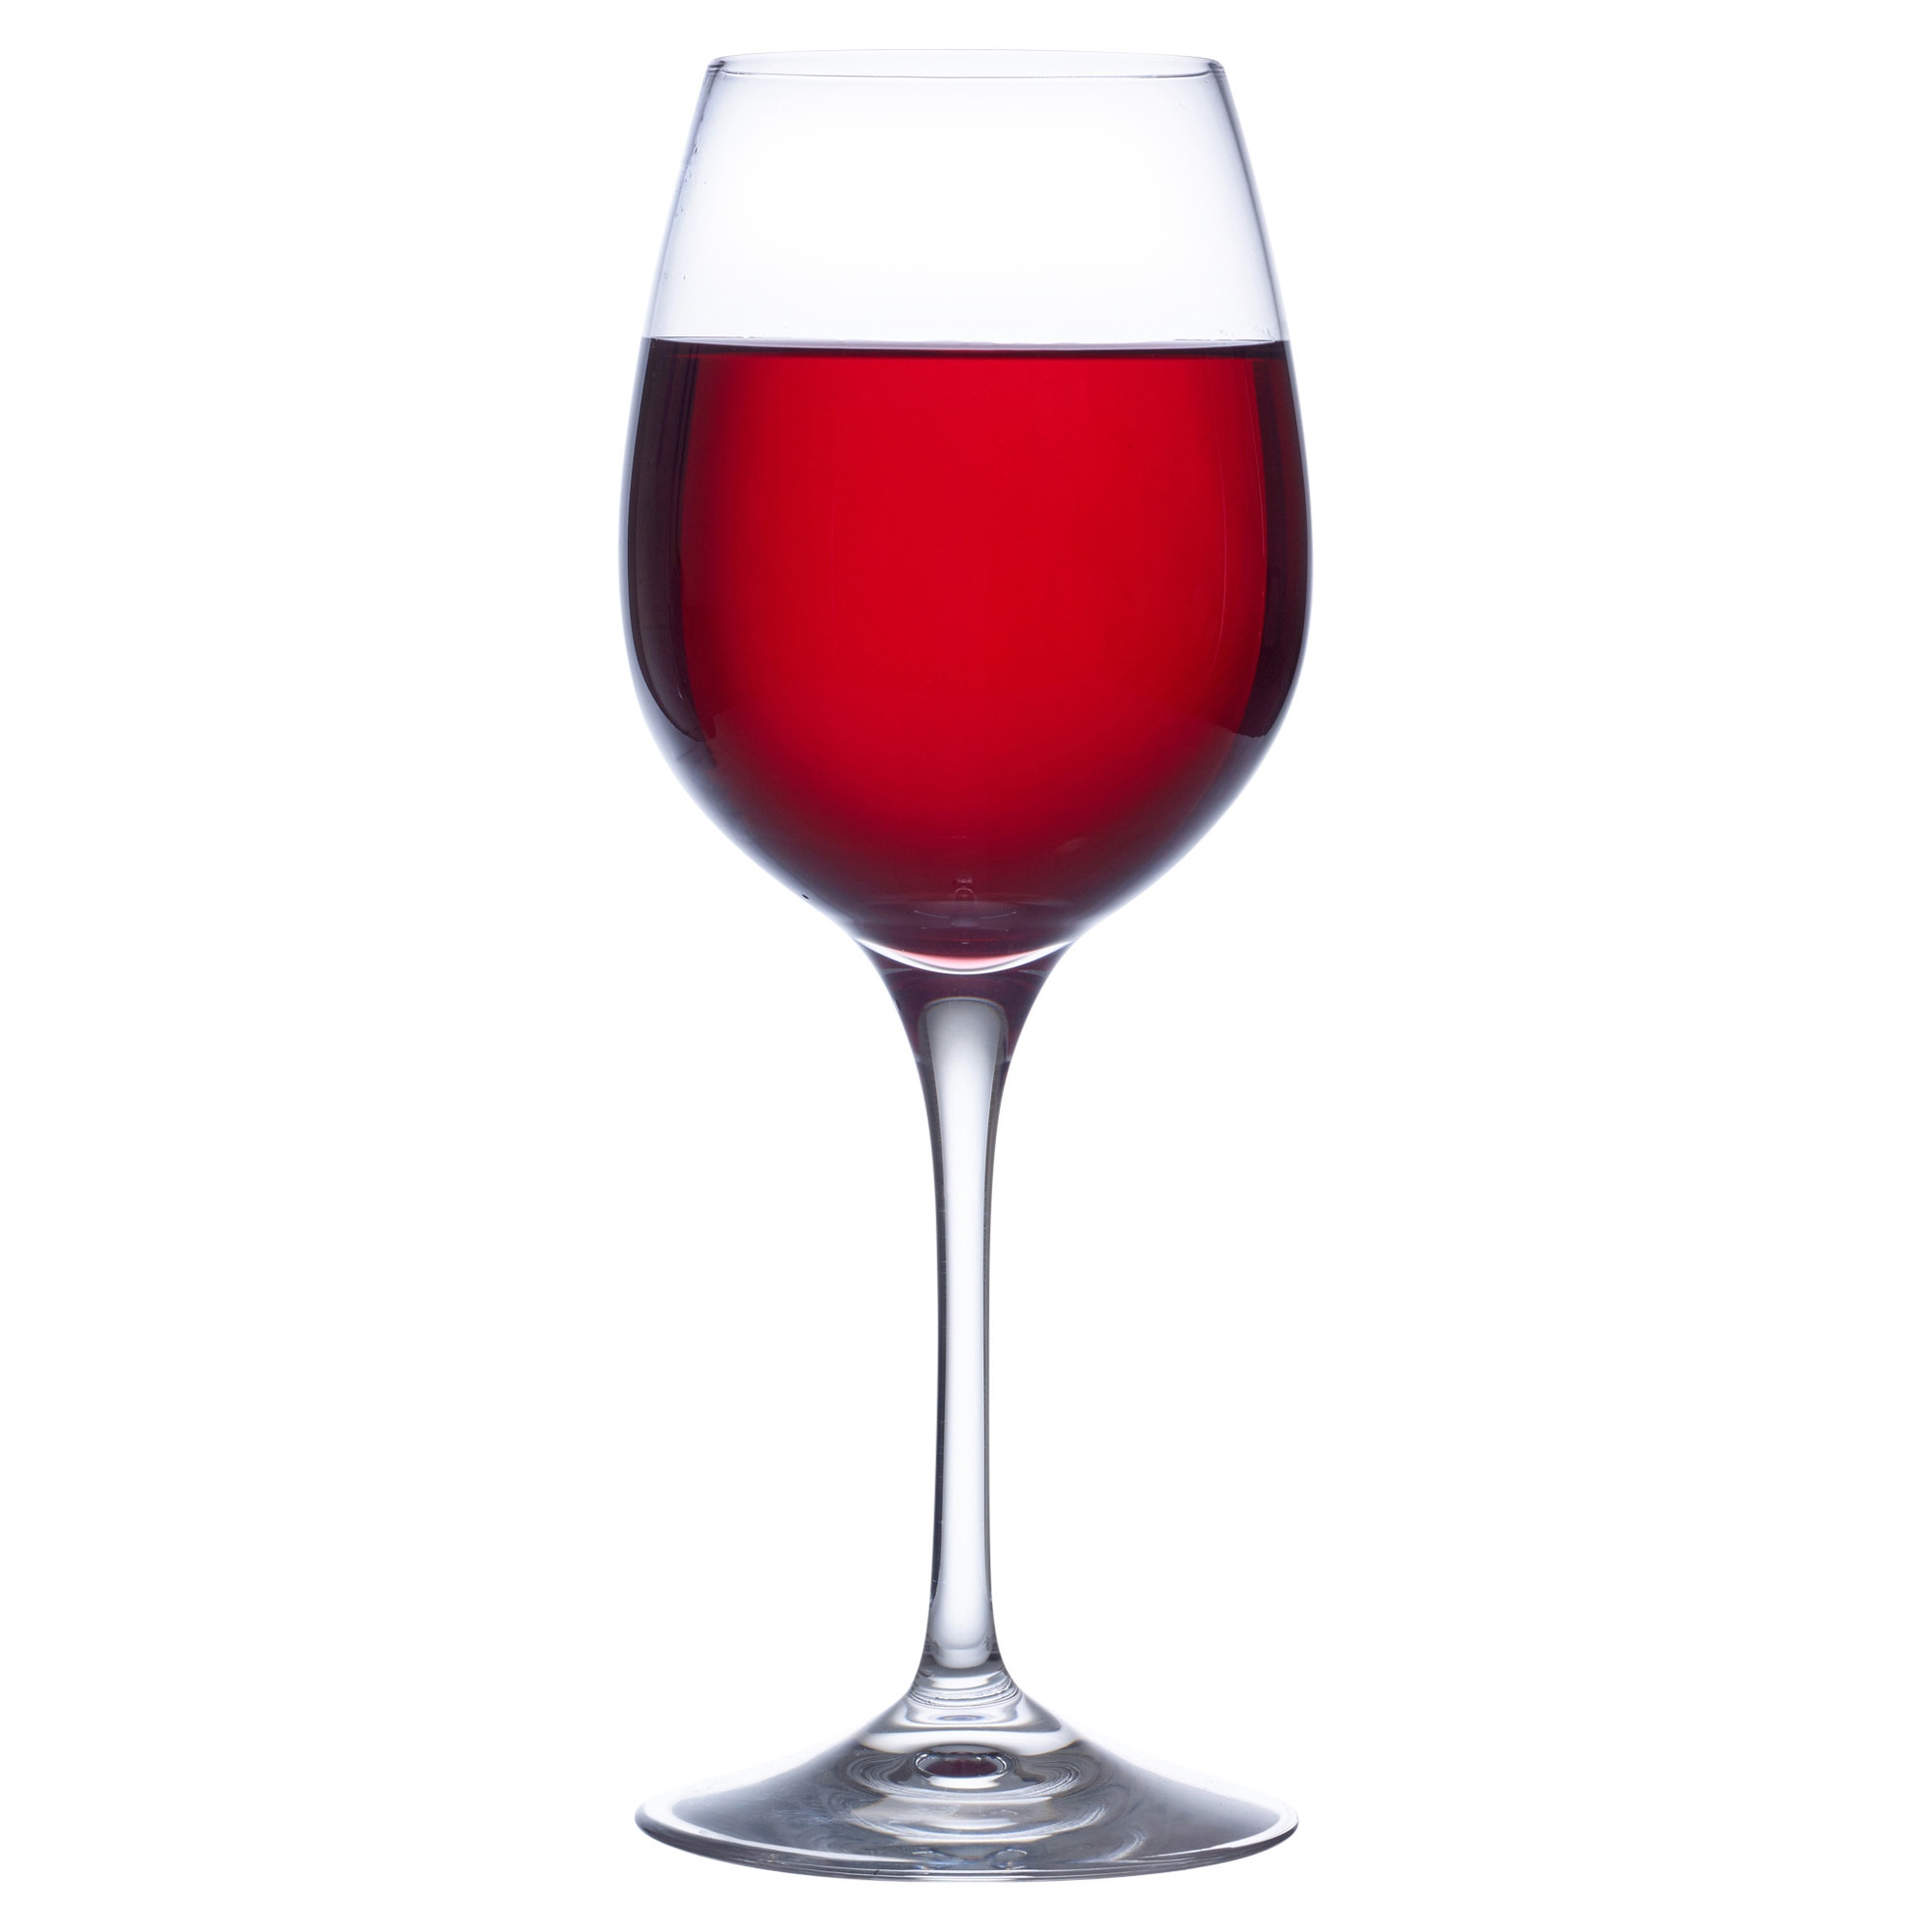 Rcr Toscana Glass Crystal Red Wine Glasses Dinner Gifted